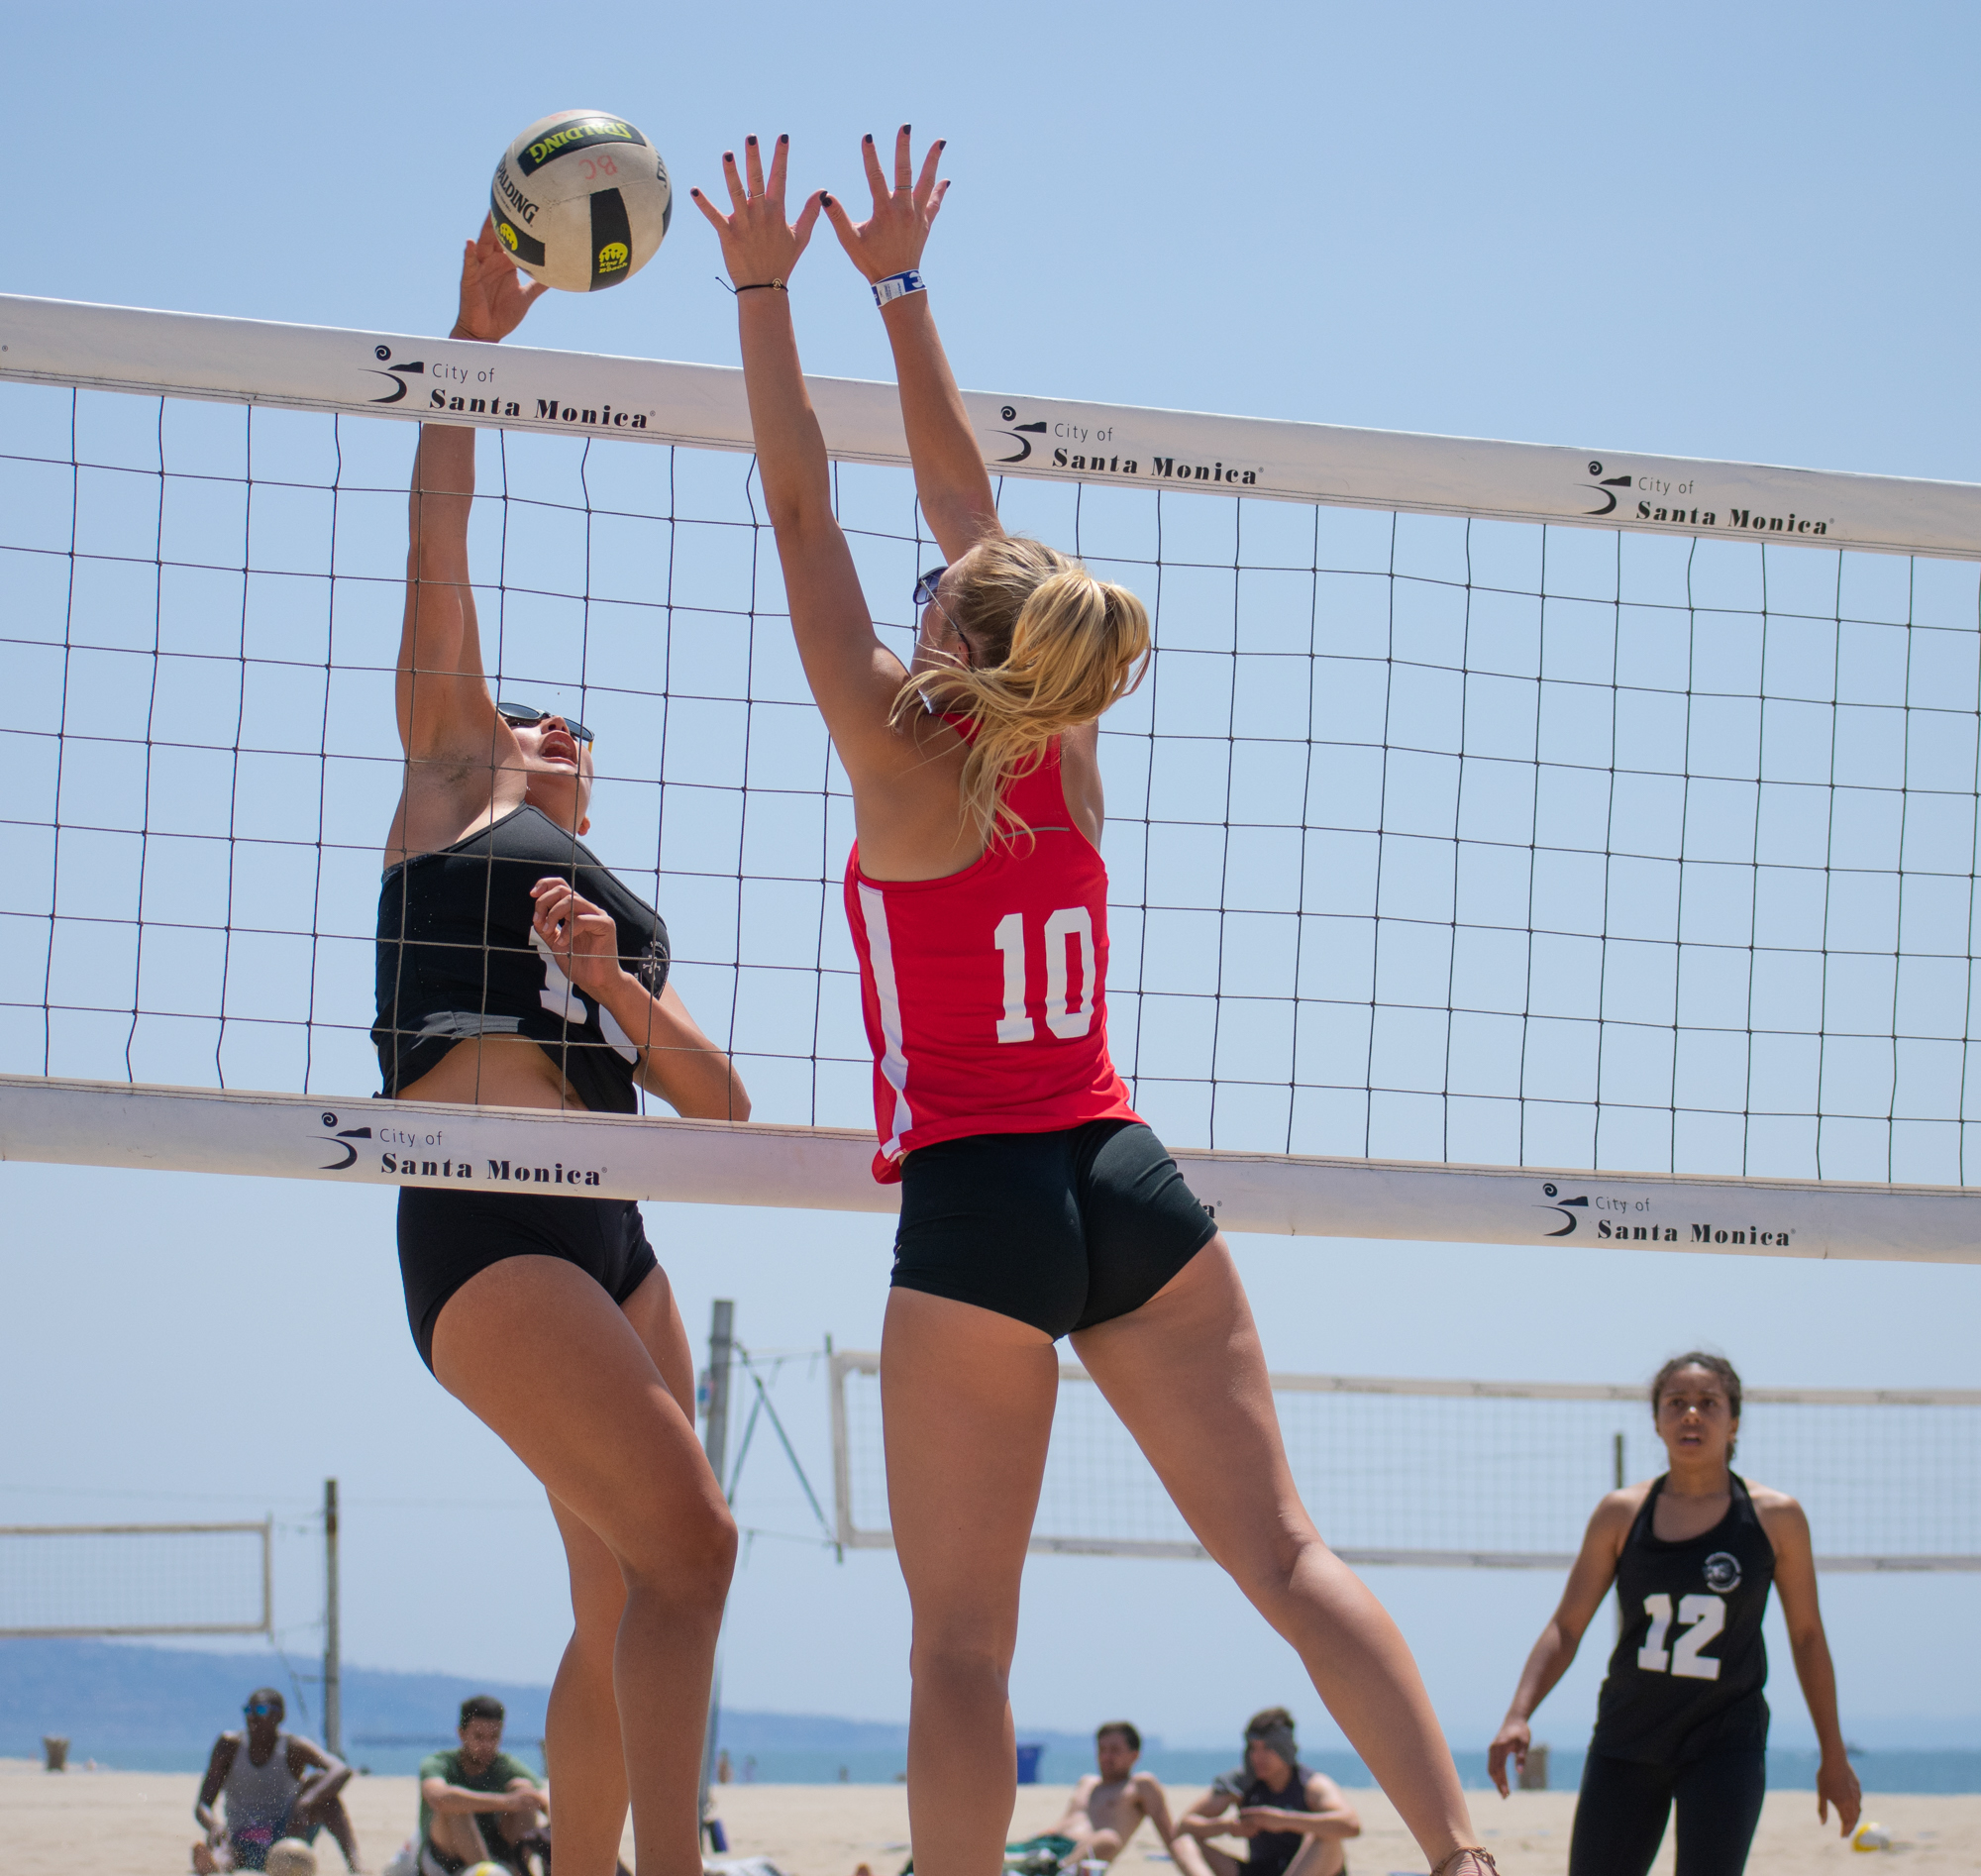 Santa Monica College Corsair Ada Nadzakova (#13) attempts to defend against Bakersfield College Knight Alex Paris (#10) as Corsair Taylor Burks (#12) looks on during a conference game of beach volleyball in court two at the Santa Monica beach on Friday, April 13, 2018 in Santa Monica, California. It was a 5-0 loss for the Corsairs, bringing their total to 2-12 for the season. (Ethan Lauren/Corsair Photo)